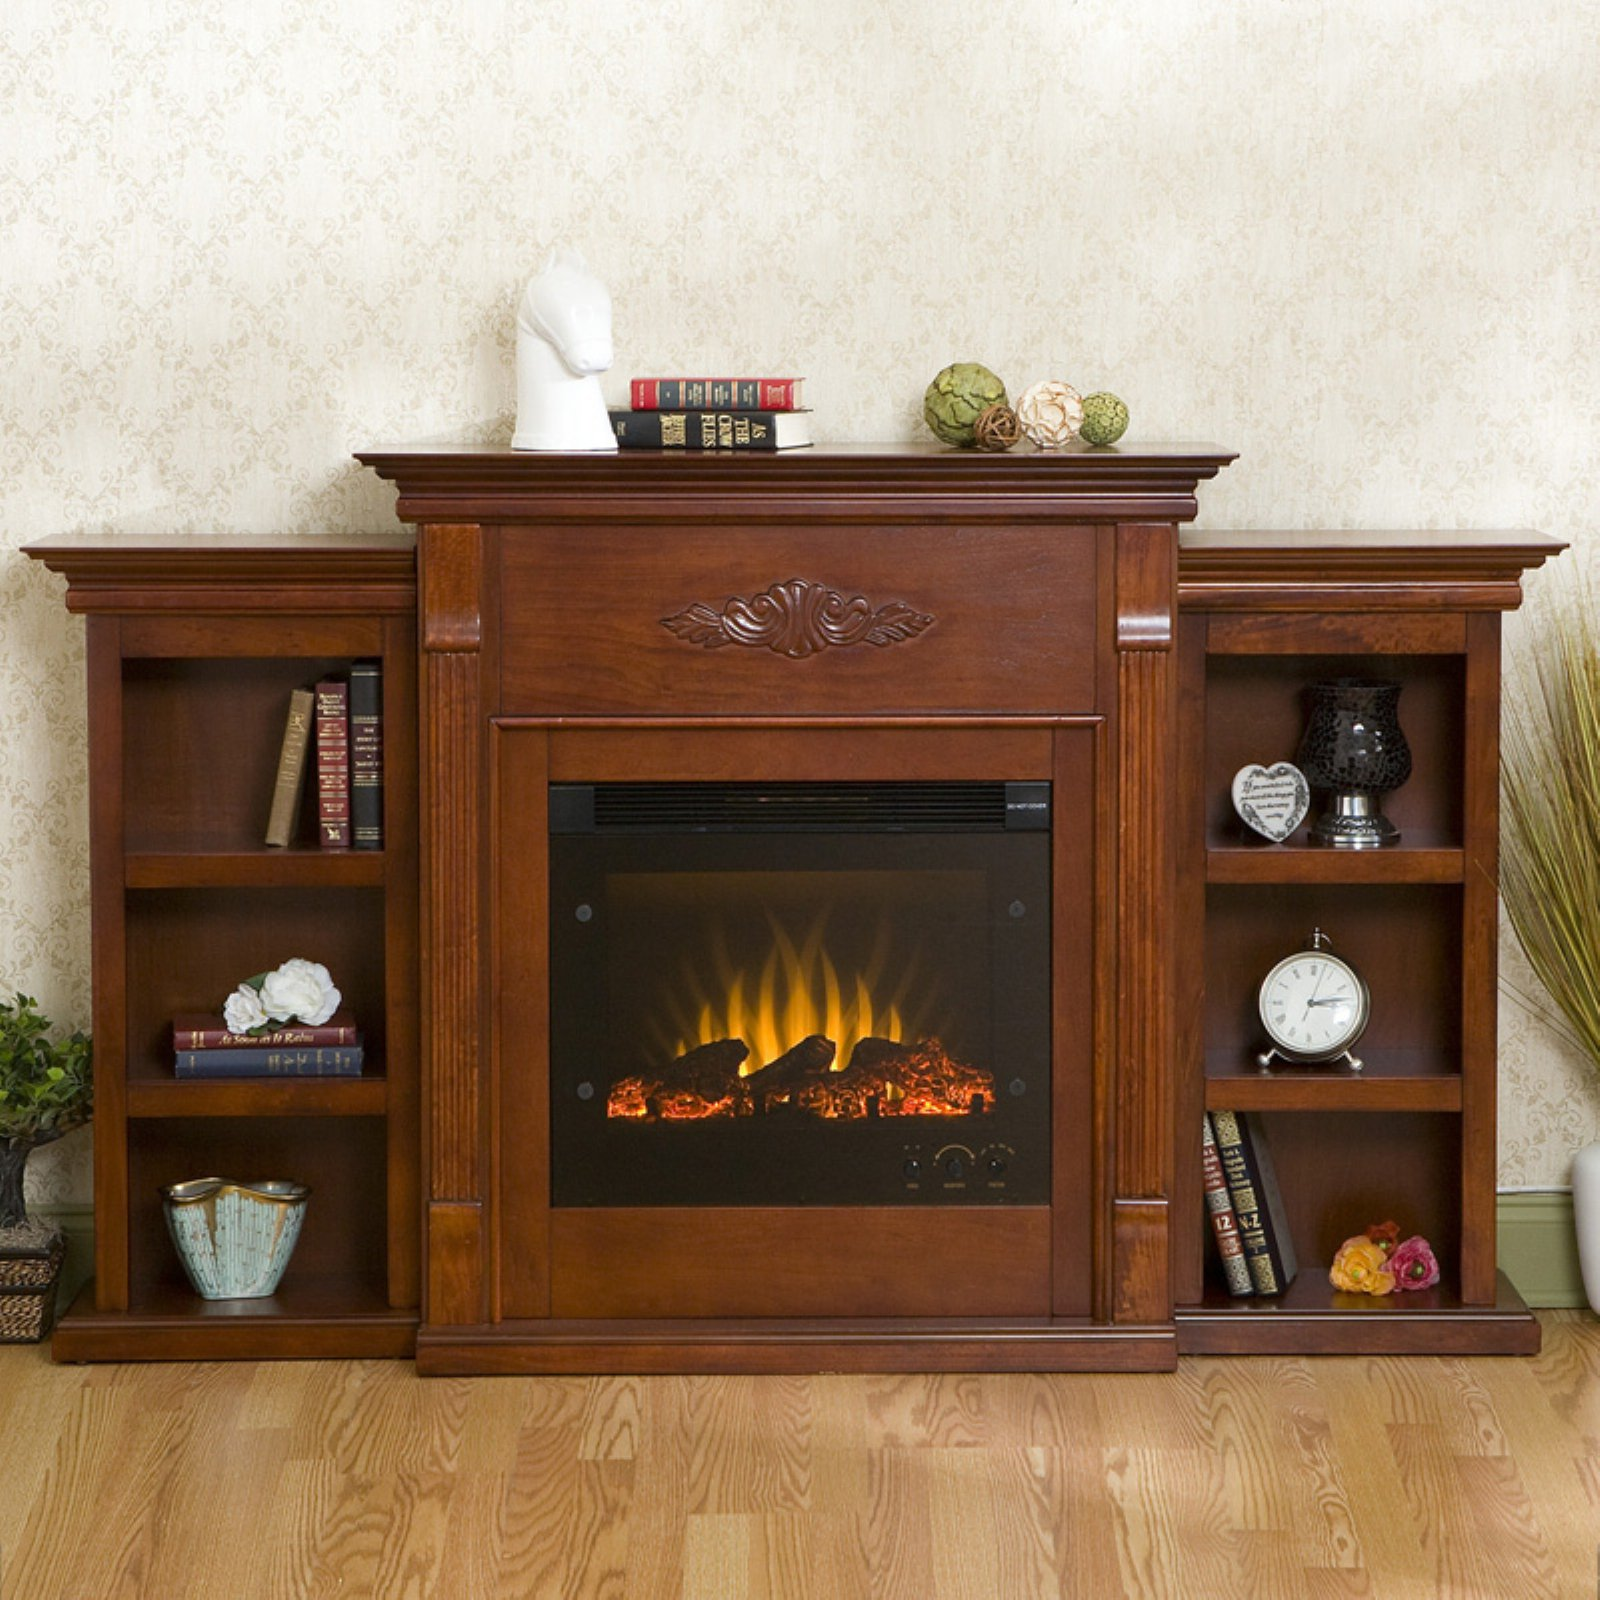 Tennyson Bookcase Electric Fireplace Southern Enterprises Tennyson Mahogany Electric Fireplace With Bookcase